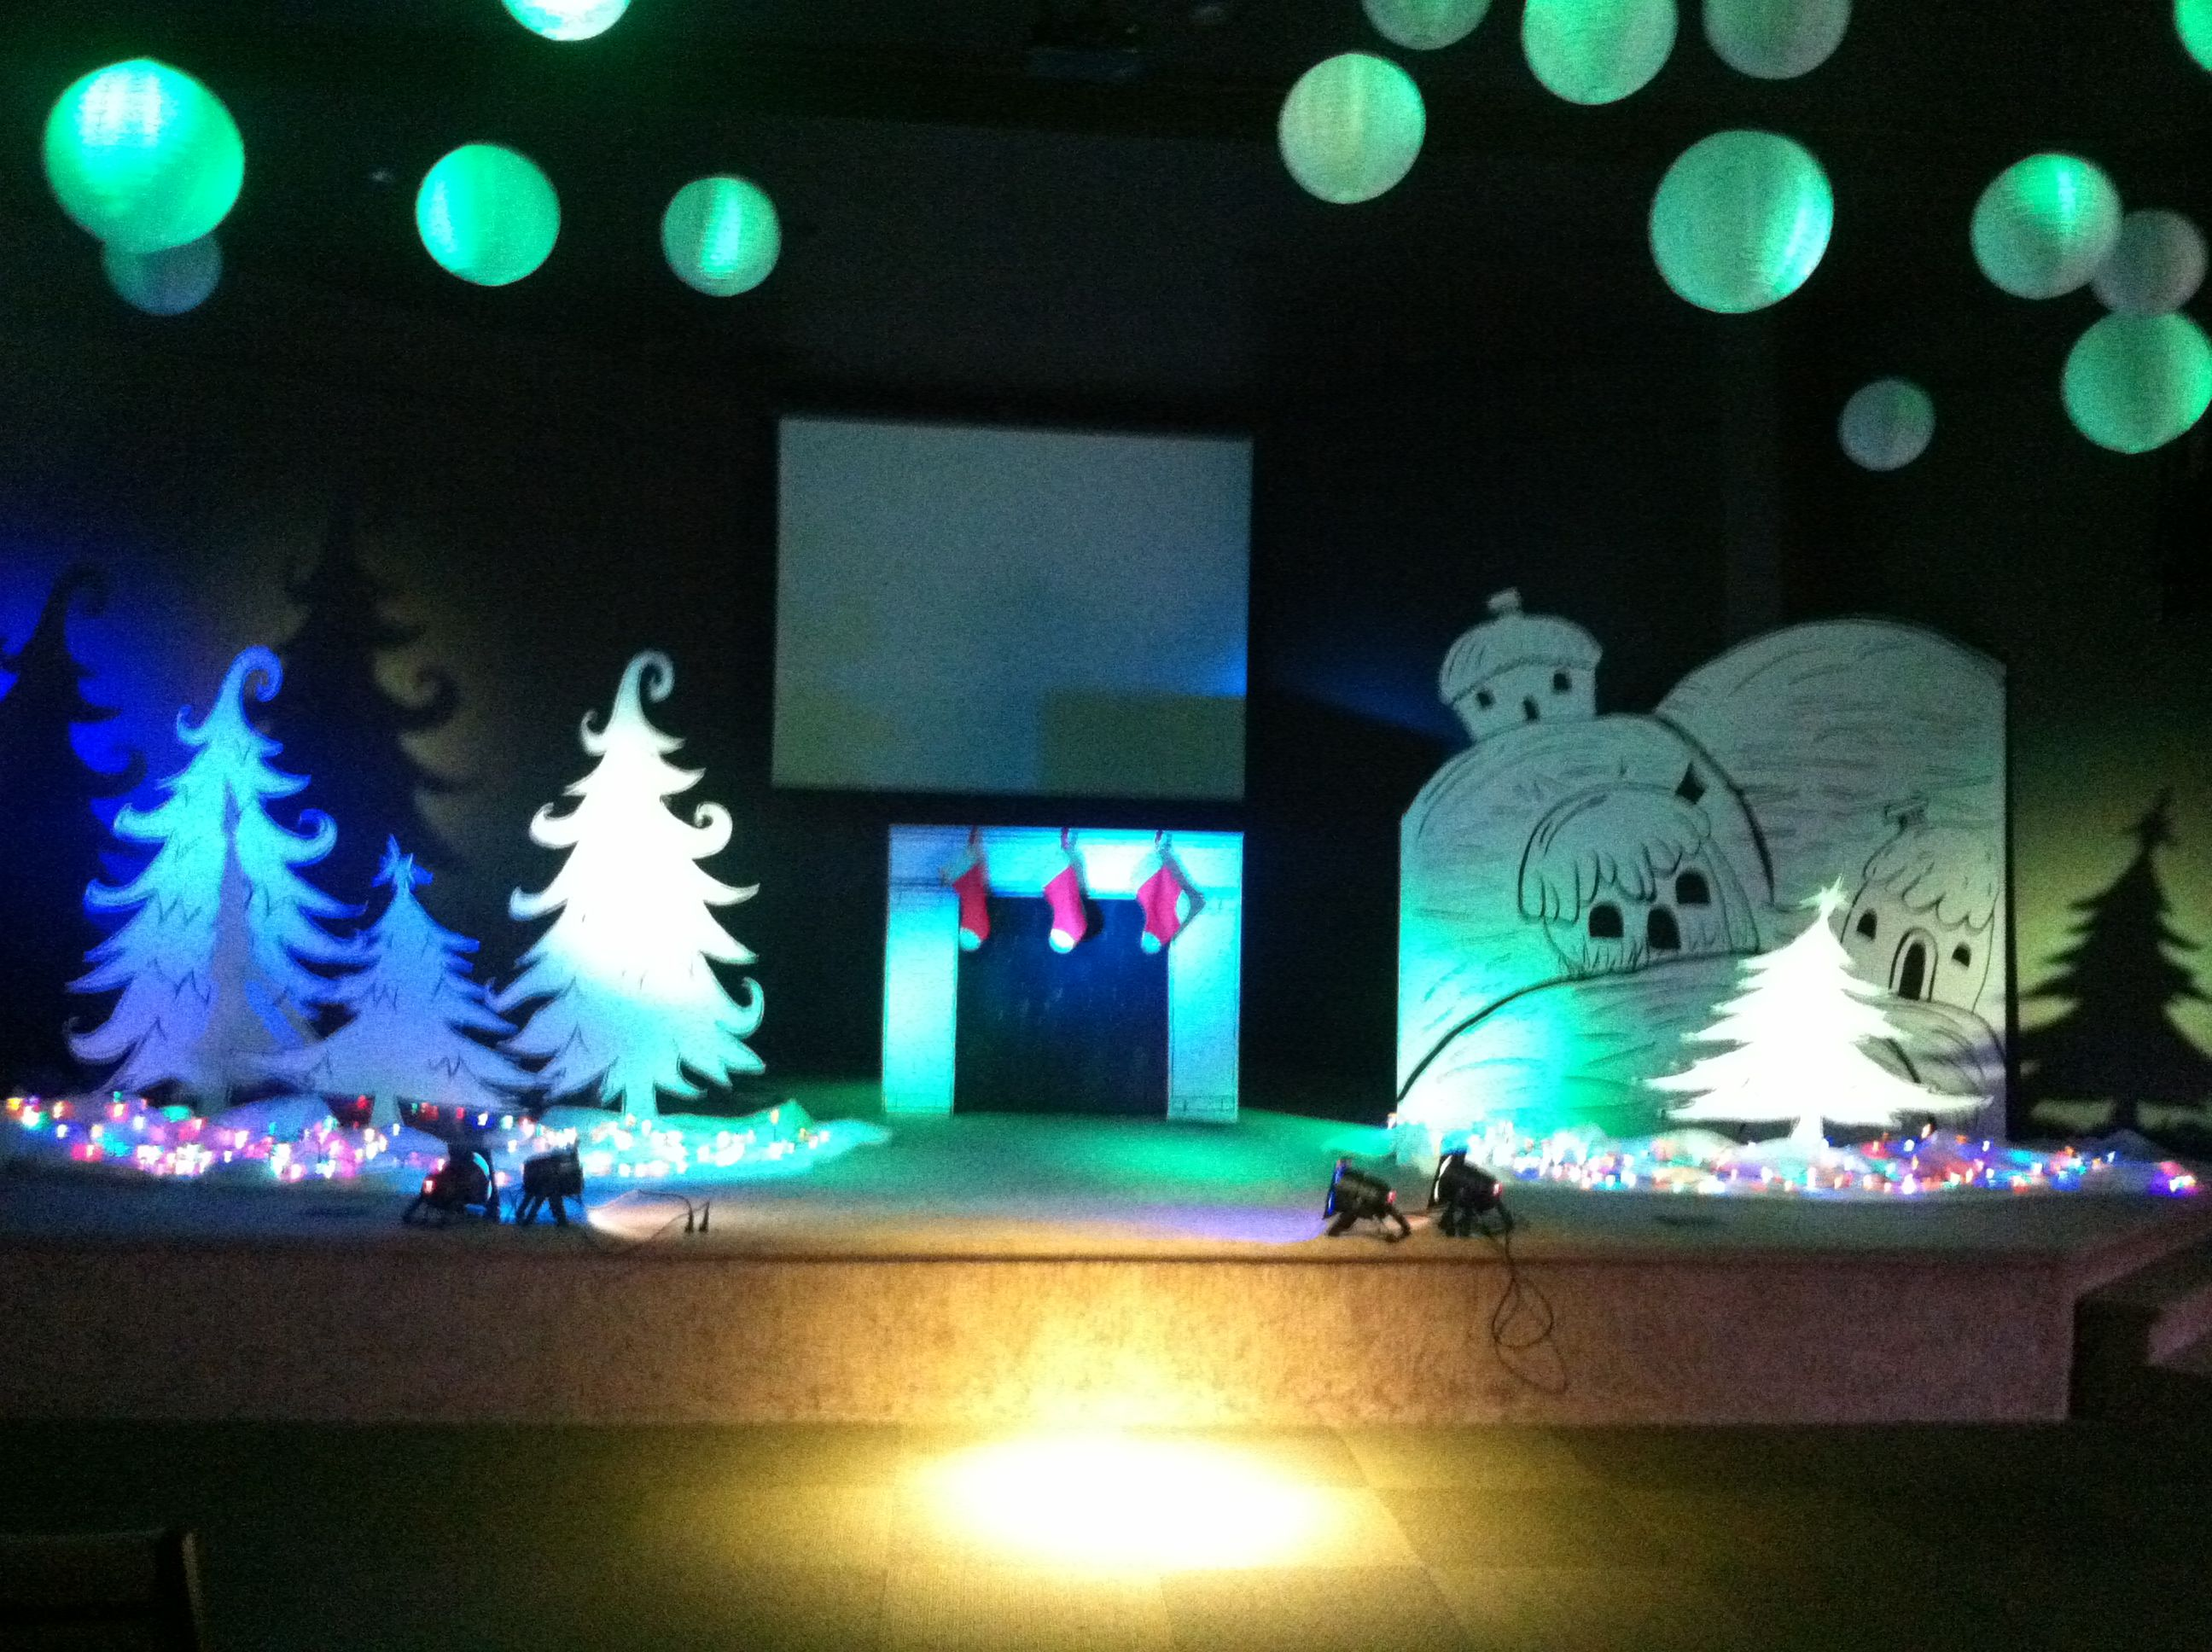 the christmas trees are simple yet very pretty simple stage decorations school decorations - Christmas Stage Decorations